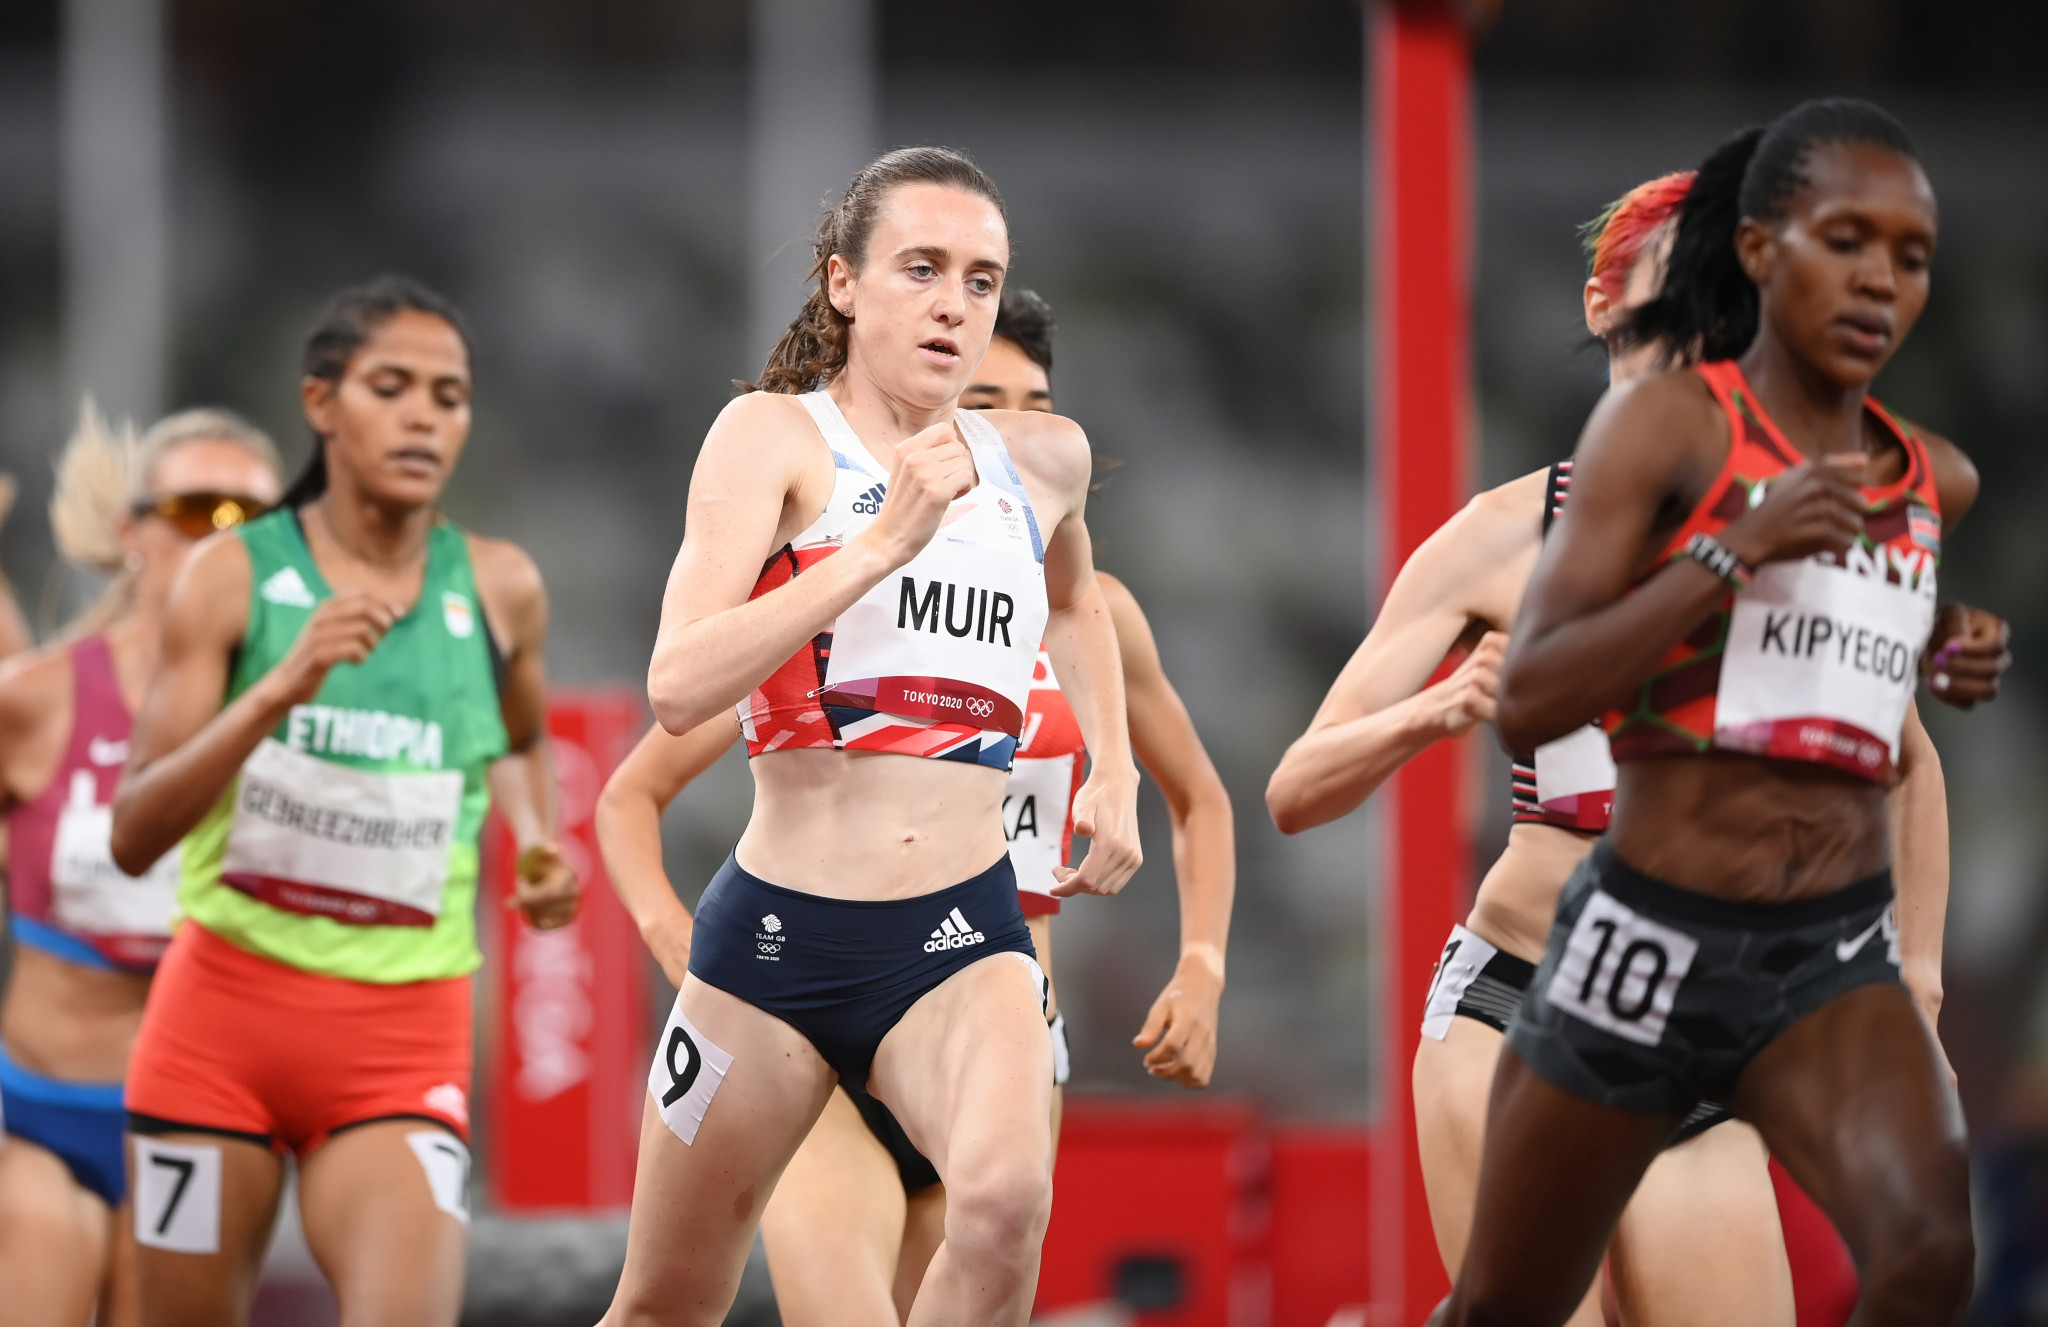 Laura Muir ran a British record time of 3:54.50 to clinch silver in the women's 1500m at Tokyo 2020 ©Getty Images